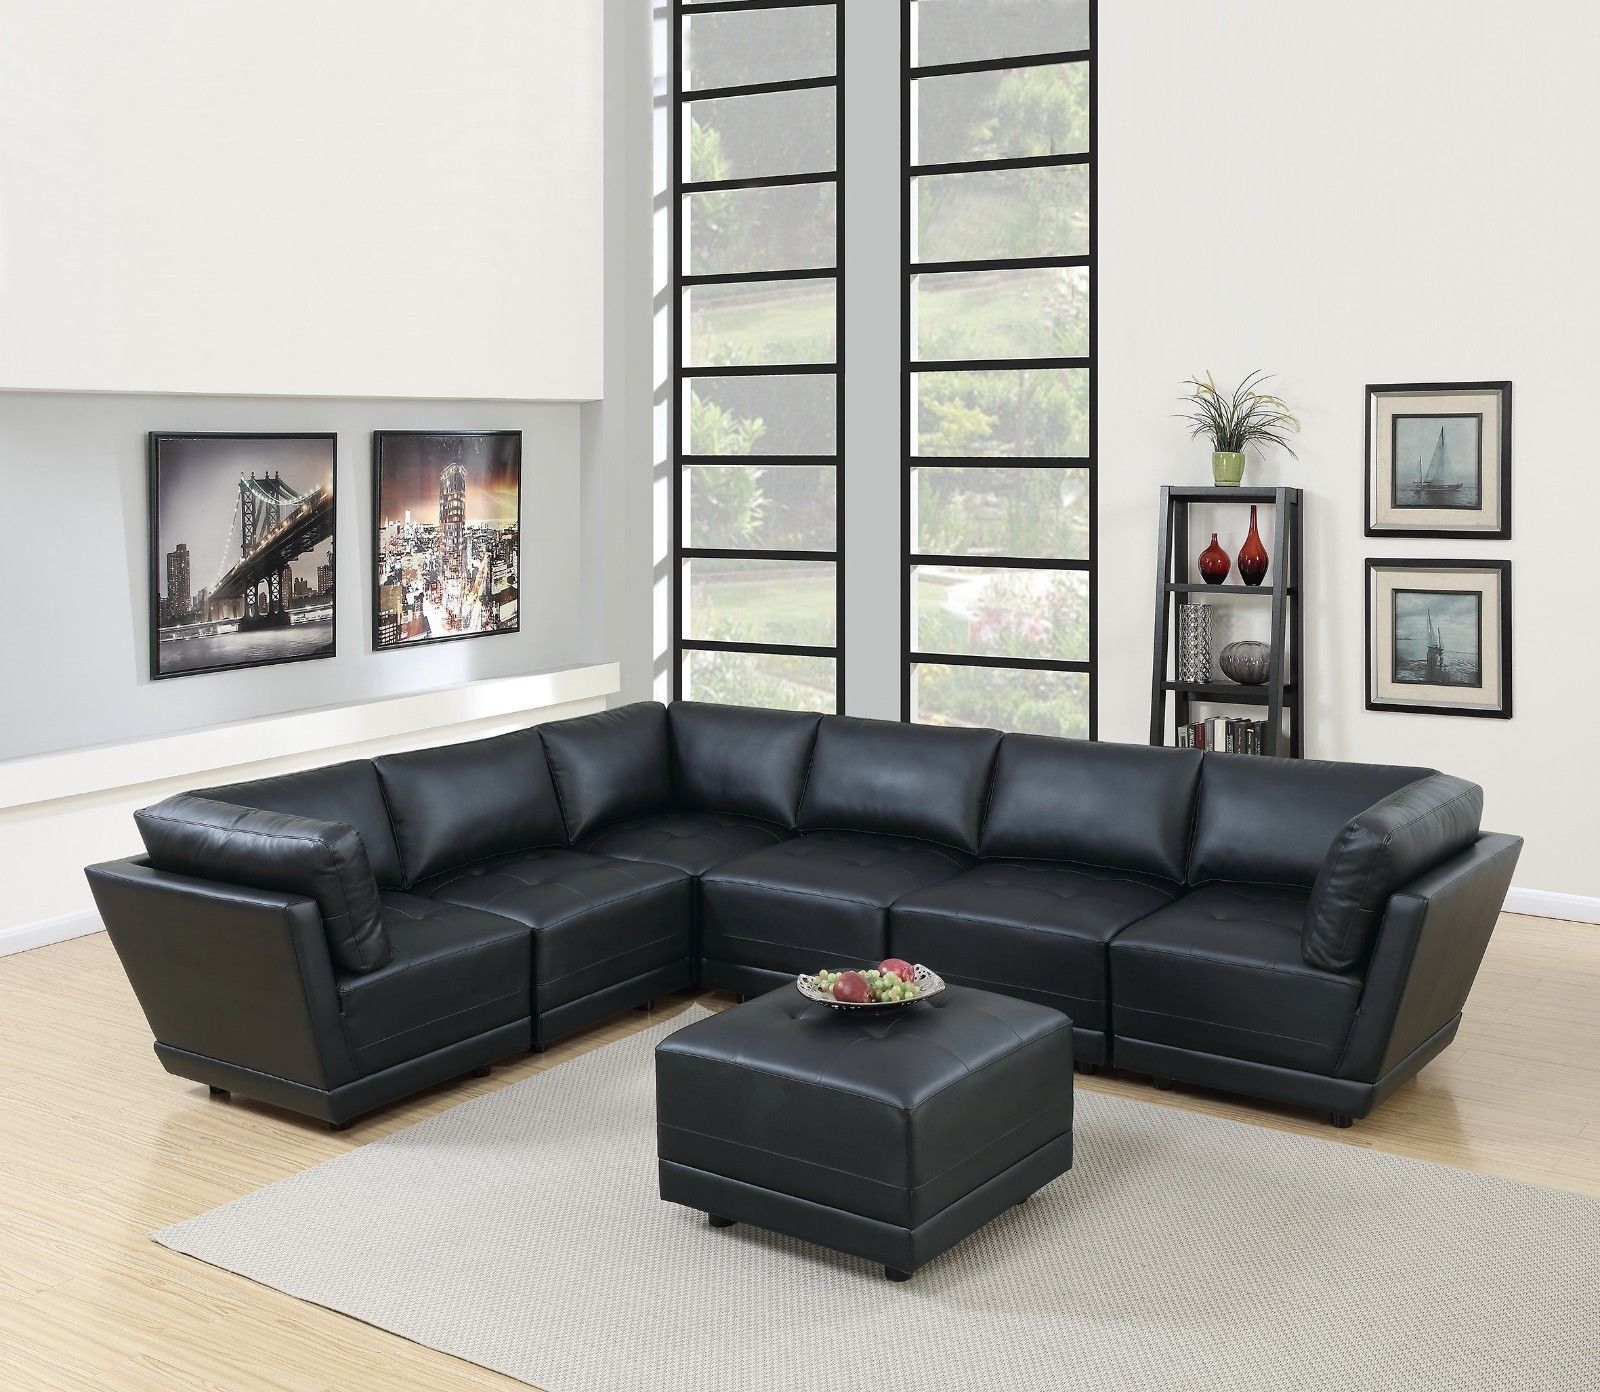 7pc Sectional Black Leather Tufted 3 Armless Chairs 3